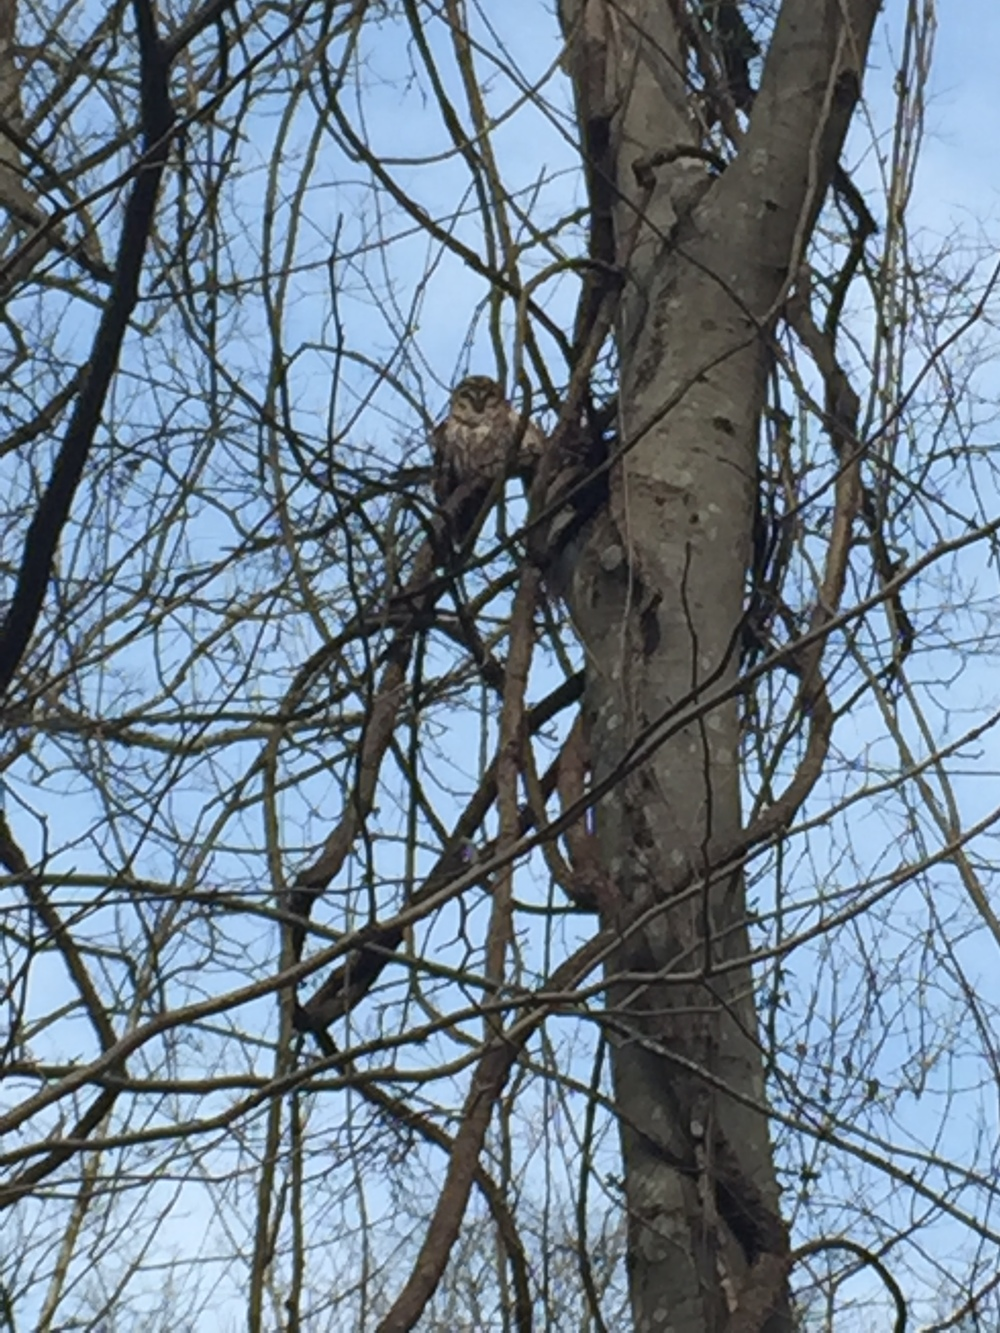 Owl spotting in a tree